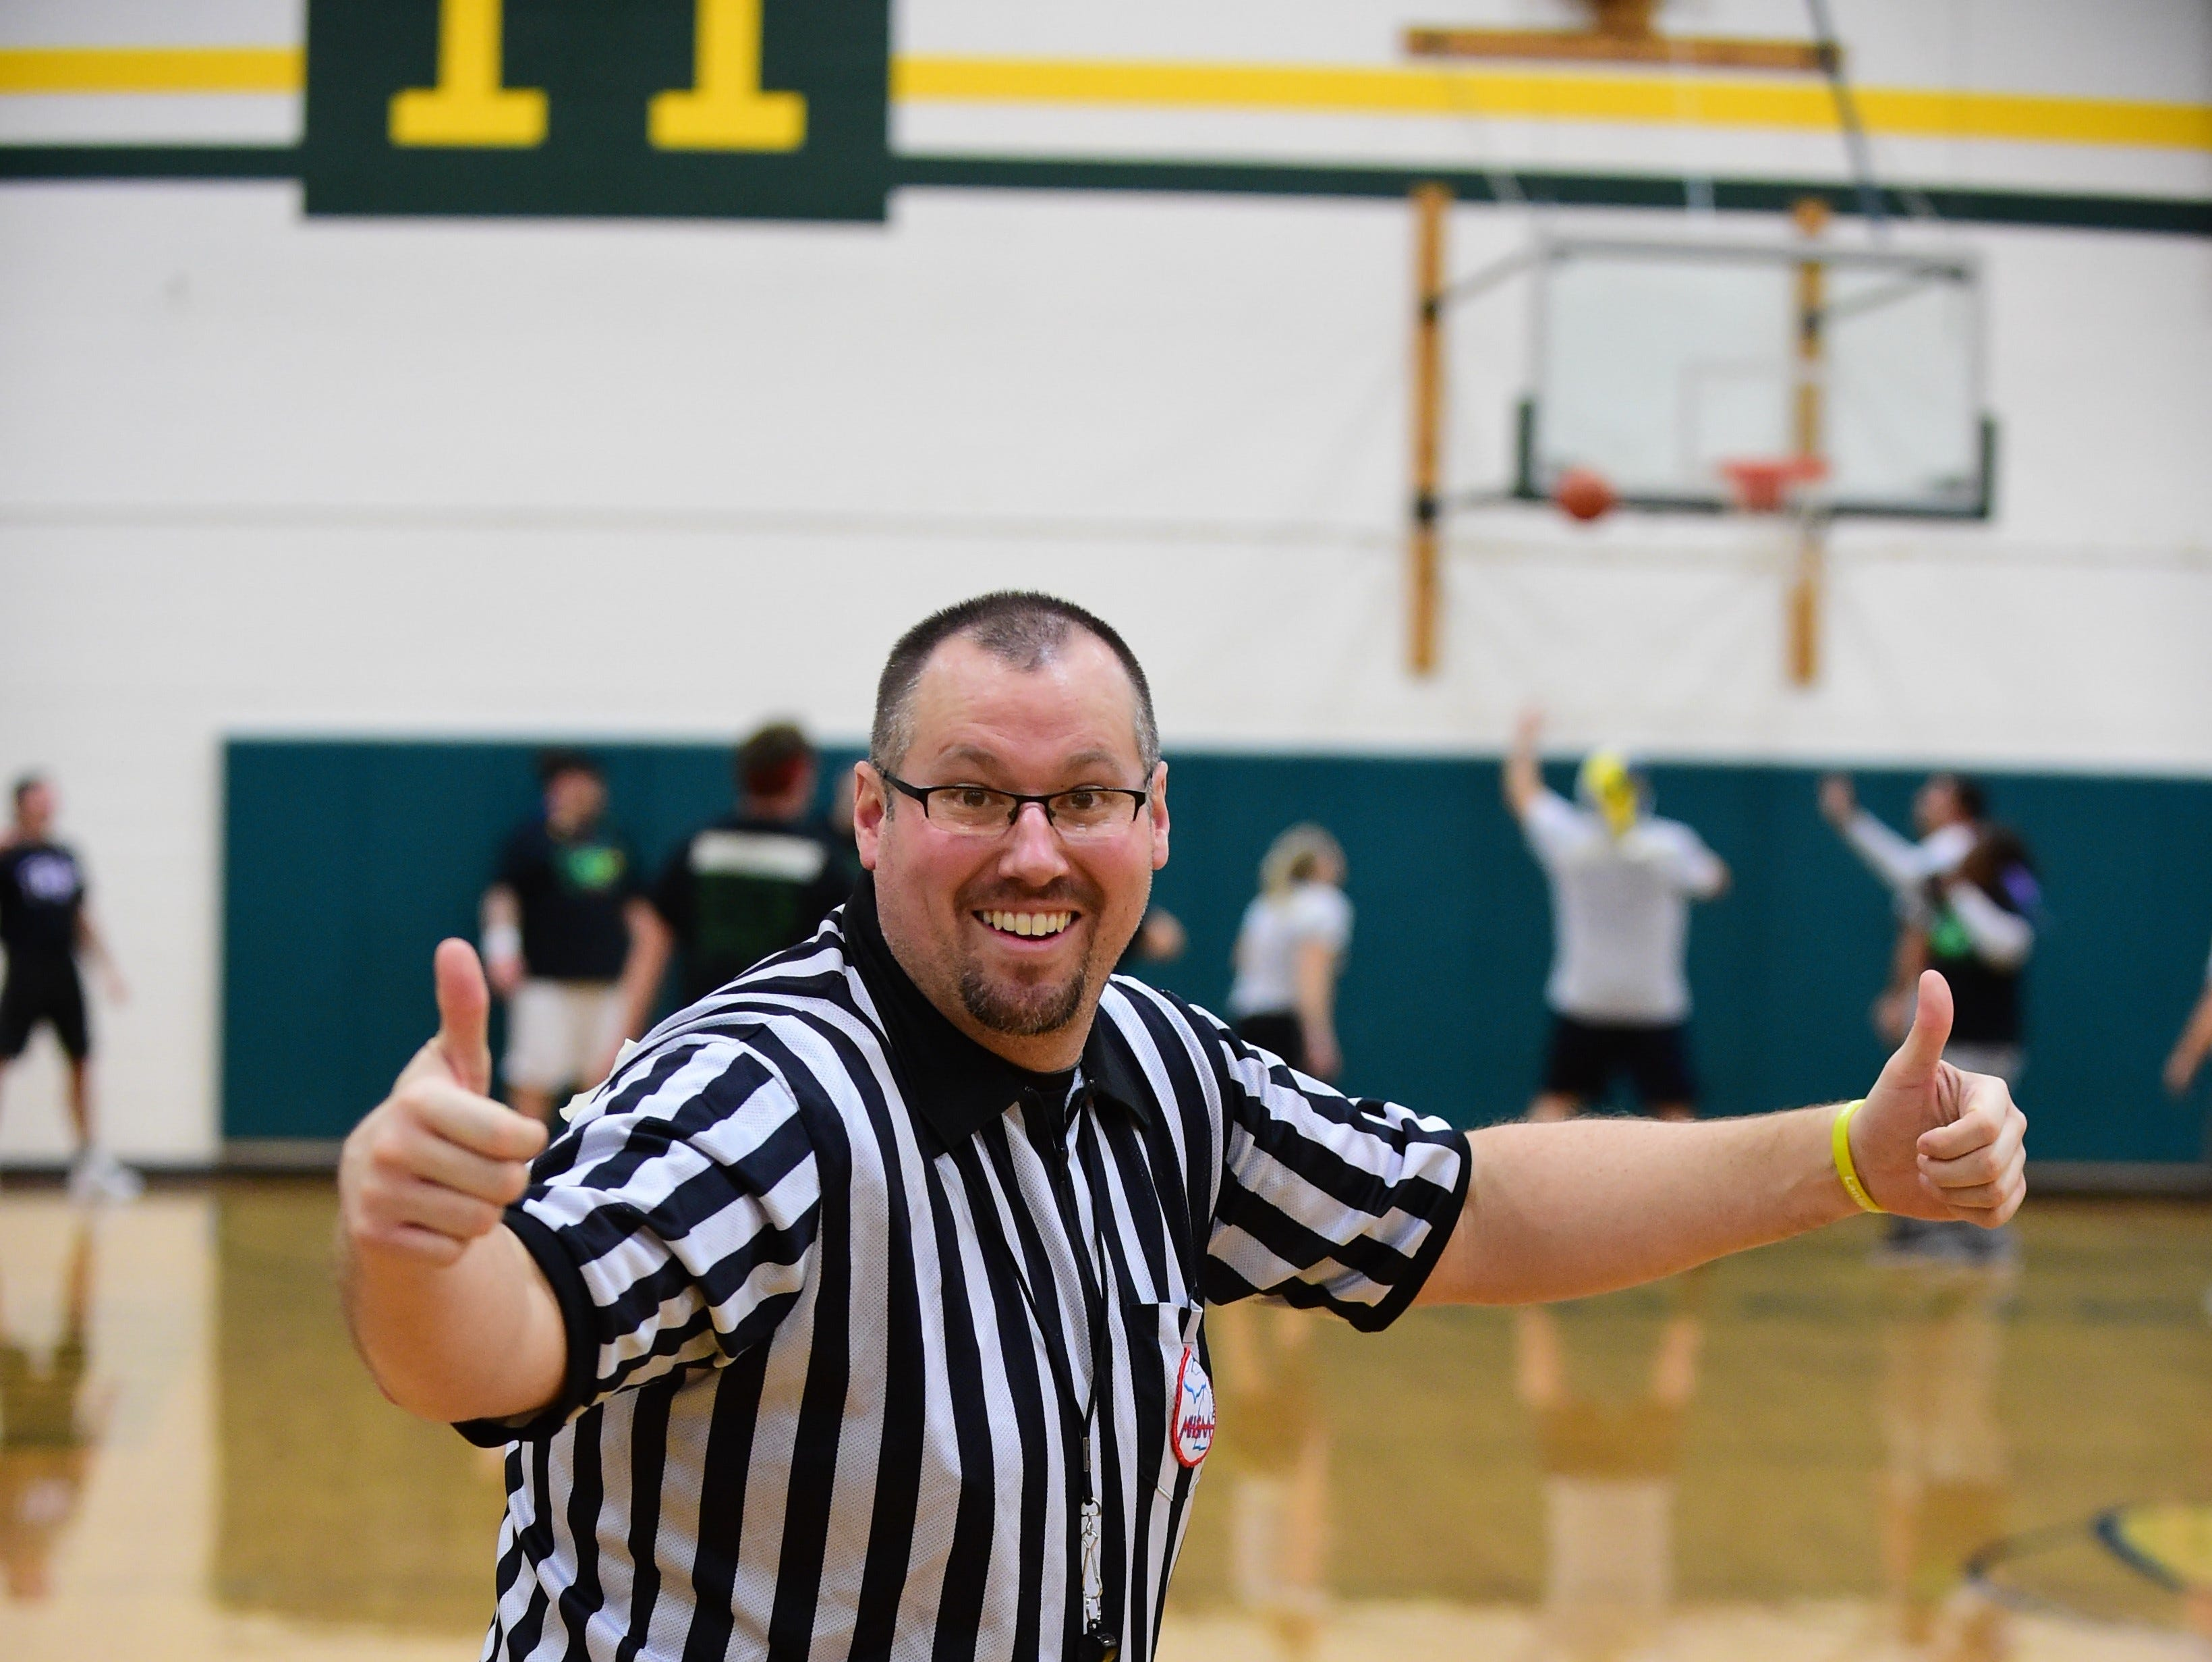 Andy Lamott (Hillside Elementary) poses as he referees the basketball charity game.